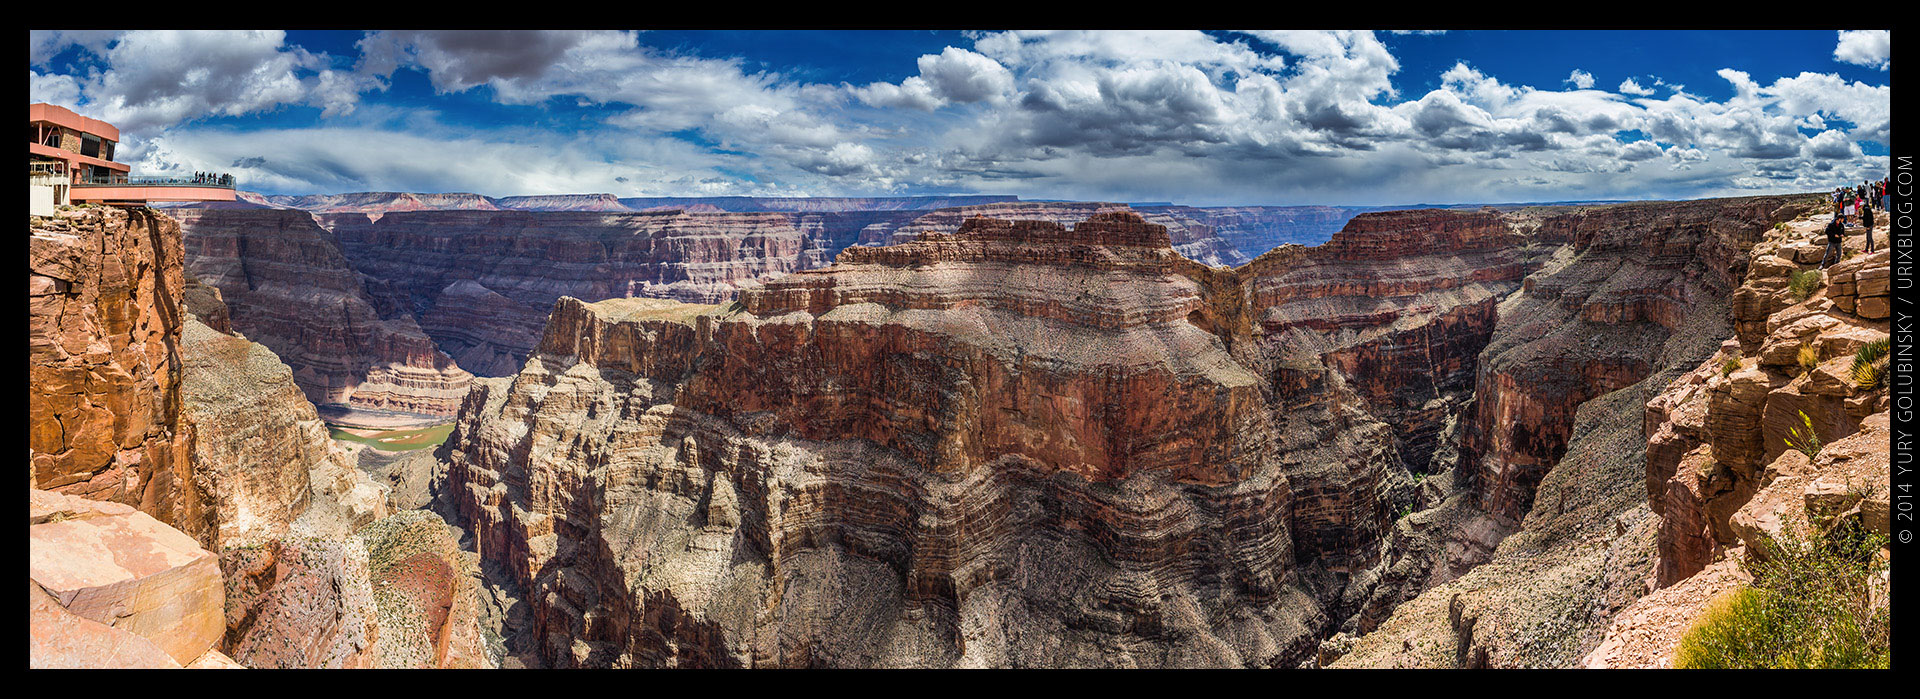 Grand Canyon West, Eagle point view, panorama, Arizona, USA, 2014